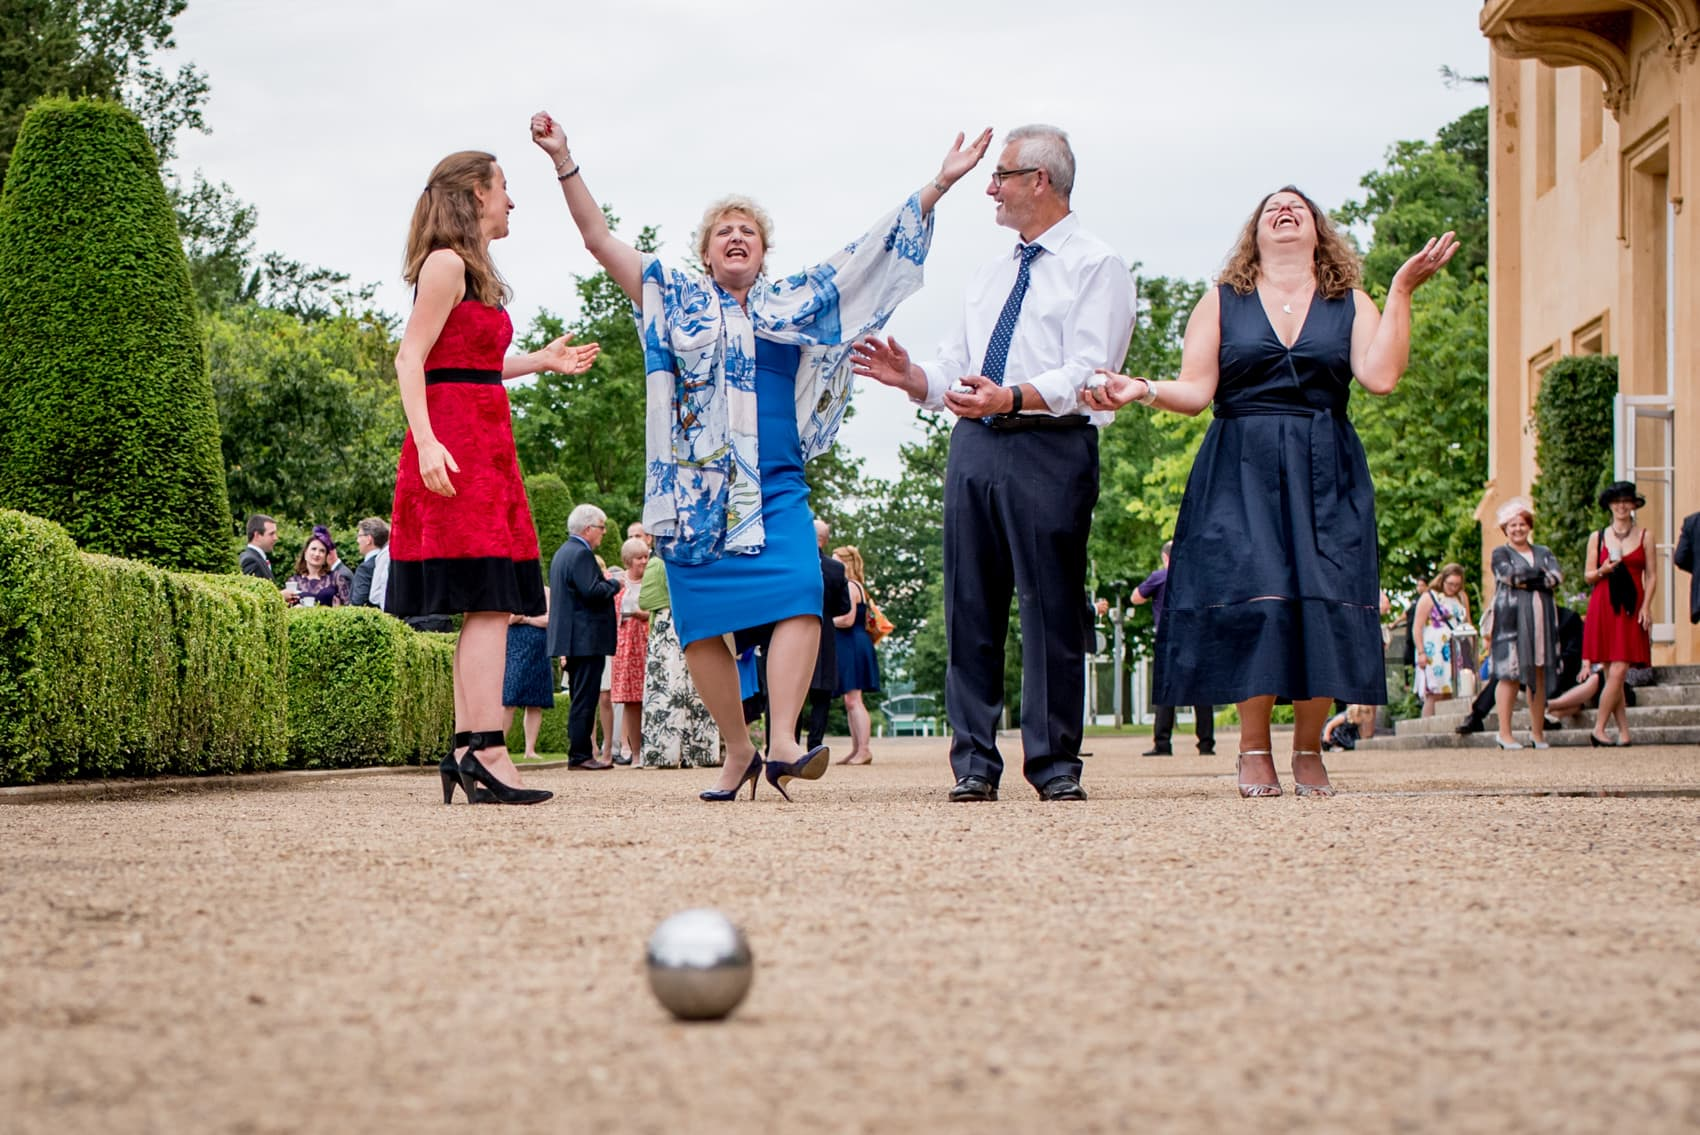 boules game at a wedding at Ditton Park